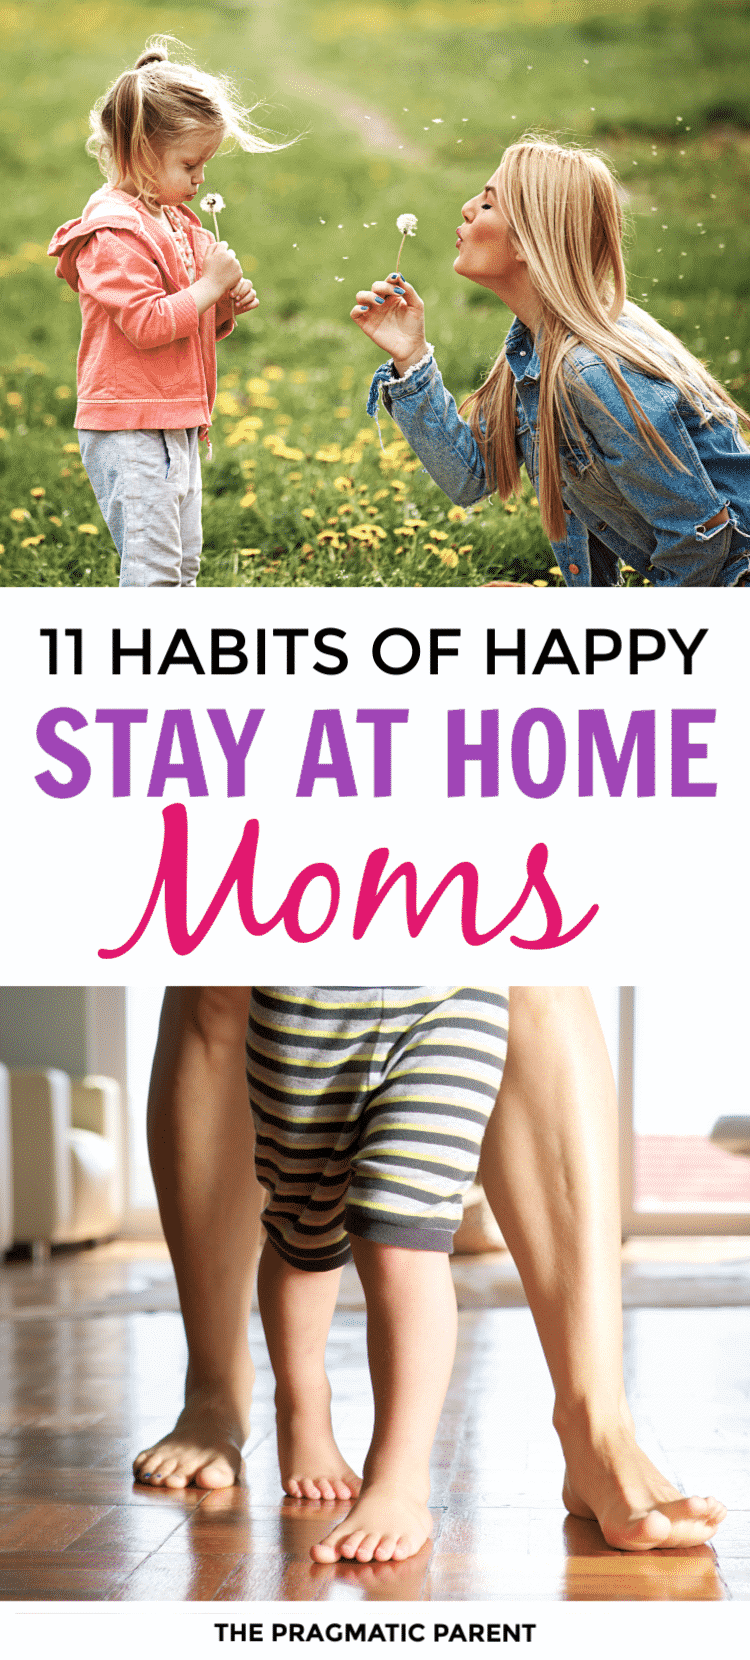 11 effective strategies will help you find happiness as a stay at home mom. How to organize your days with the tools to being a Happy Stay at Home Mom. #stayathomemom #beahappymom #happymom #sahm #stayathomemomschedule